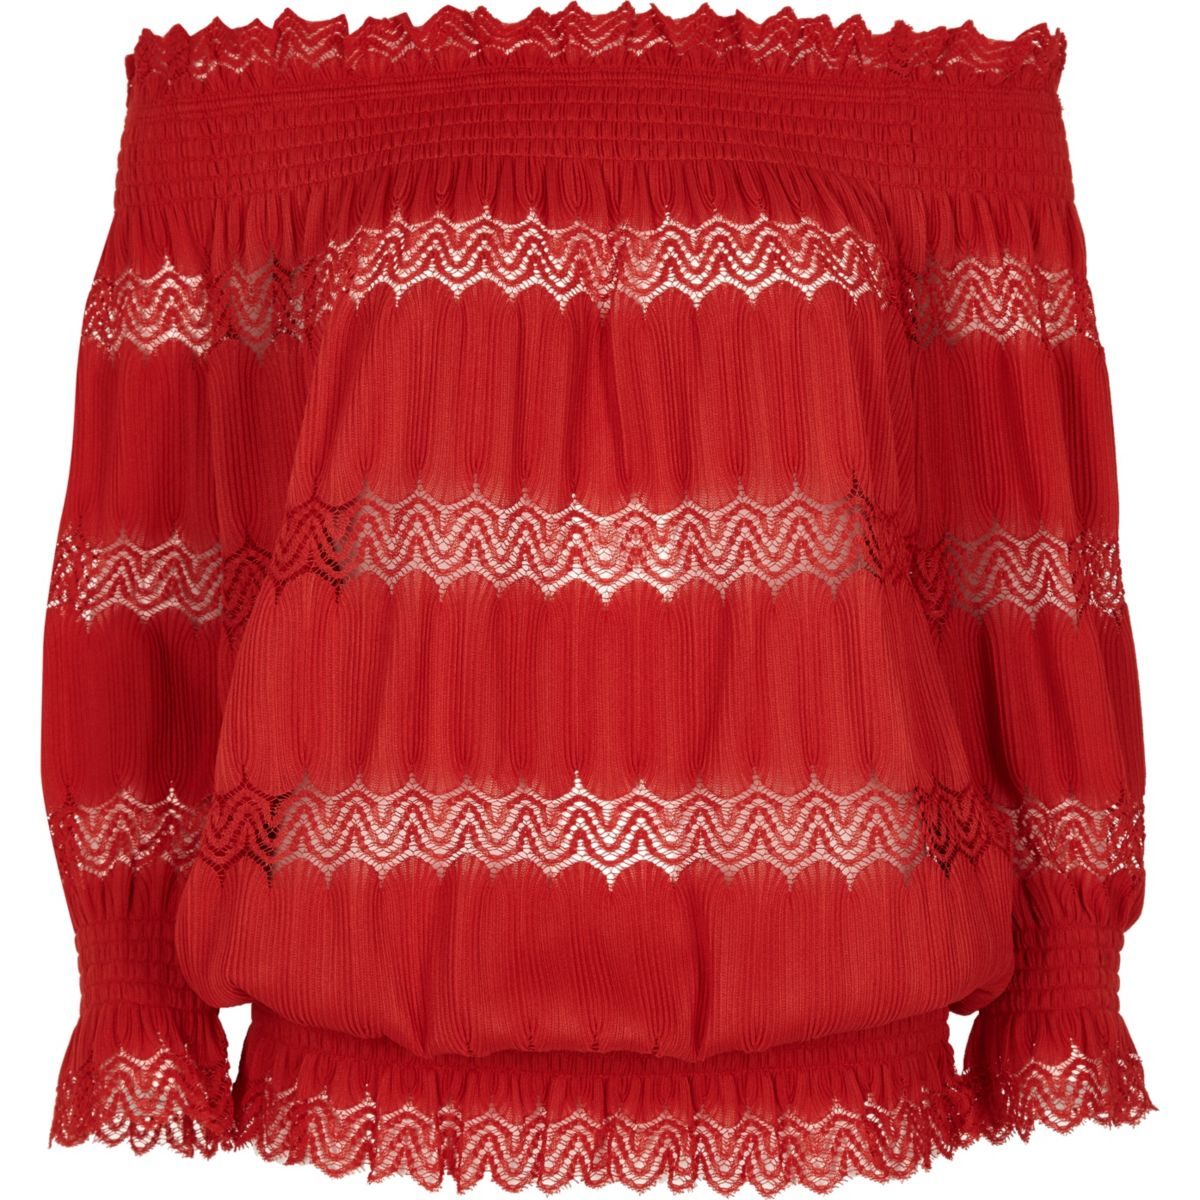 Red lace shirred bardot top - Tops - Sale - women